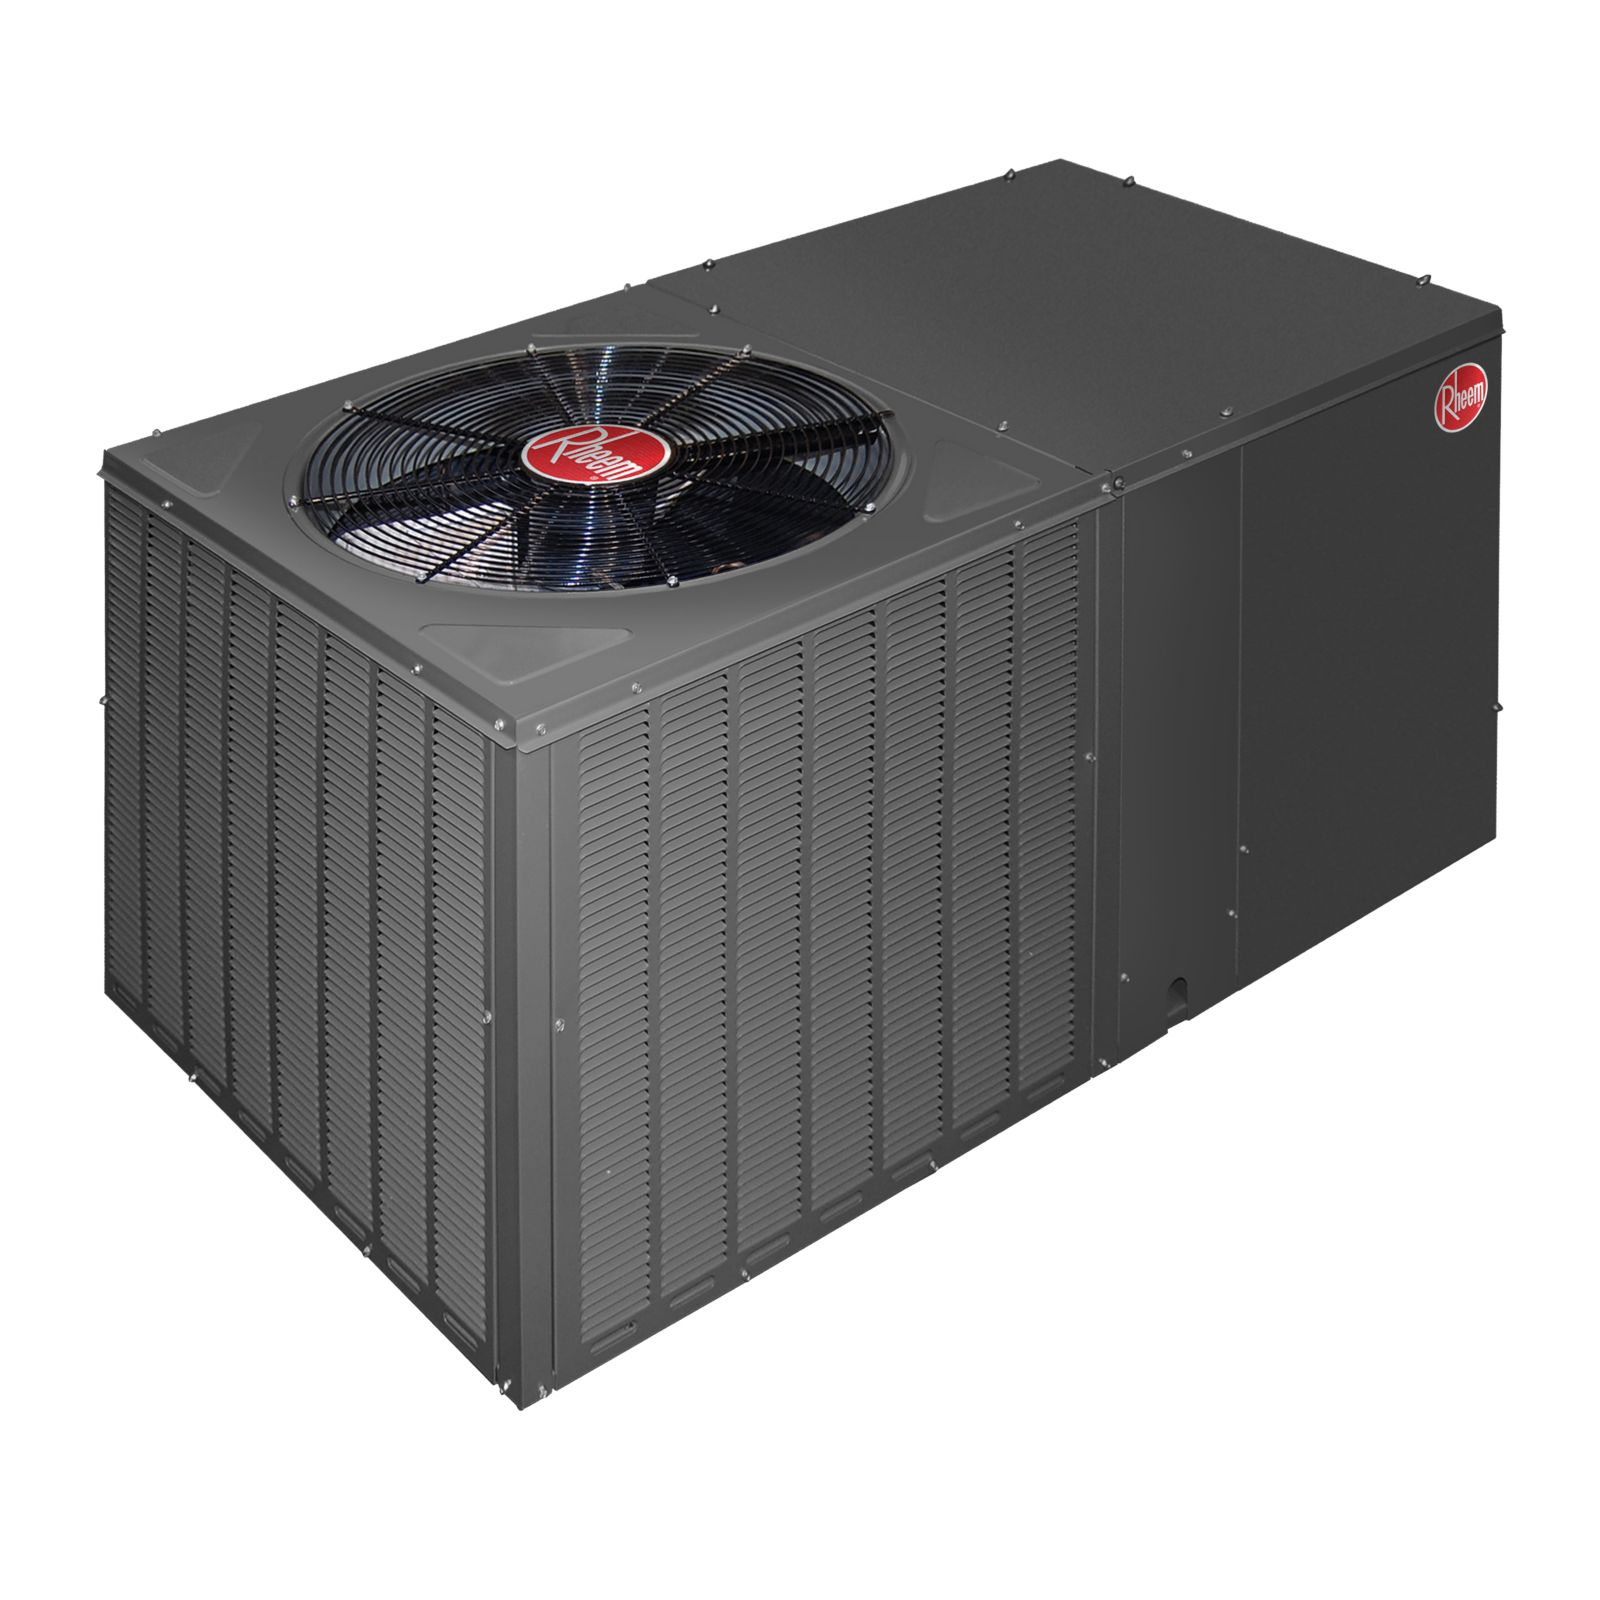 Rheem RQRM-A042JK000AUA - Classic 3 1/2 Ton 15/16 SEER, R-410A, Packaged Heat Pump With Horizontal Discharge